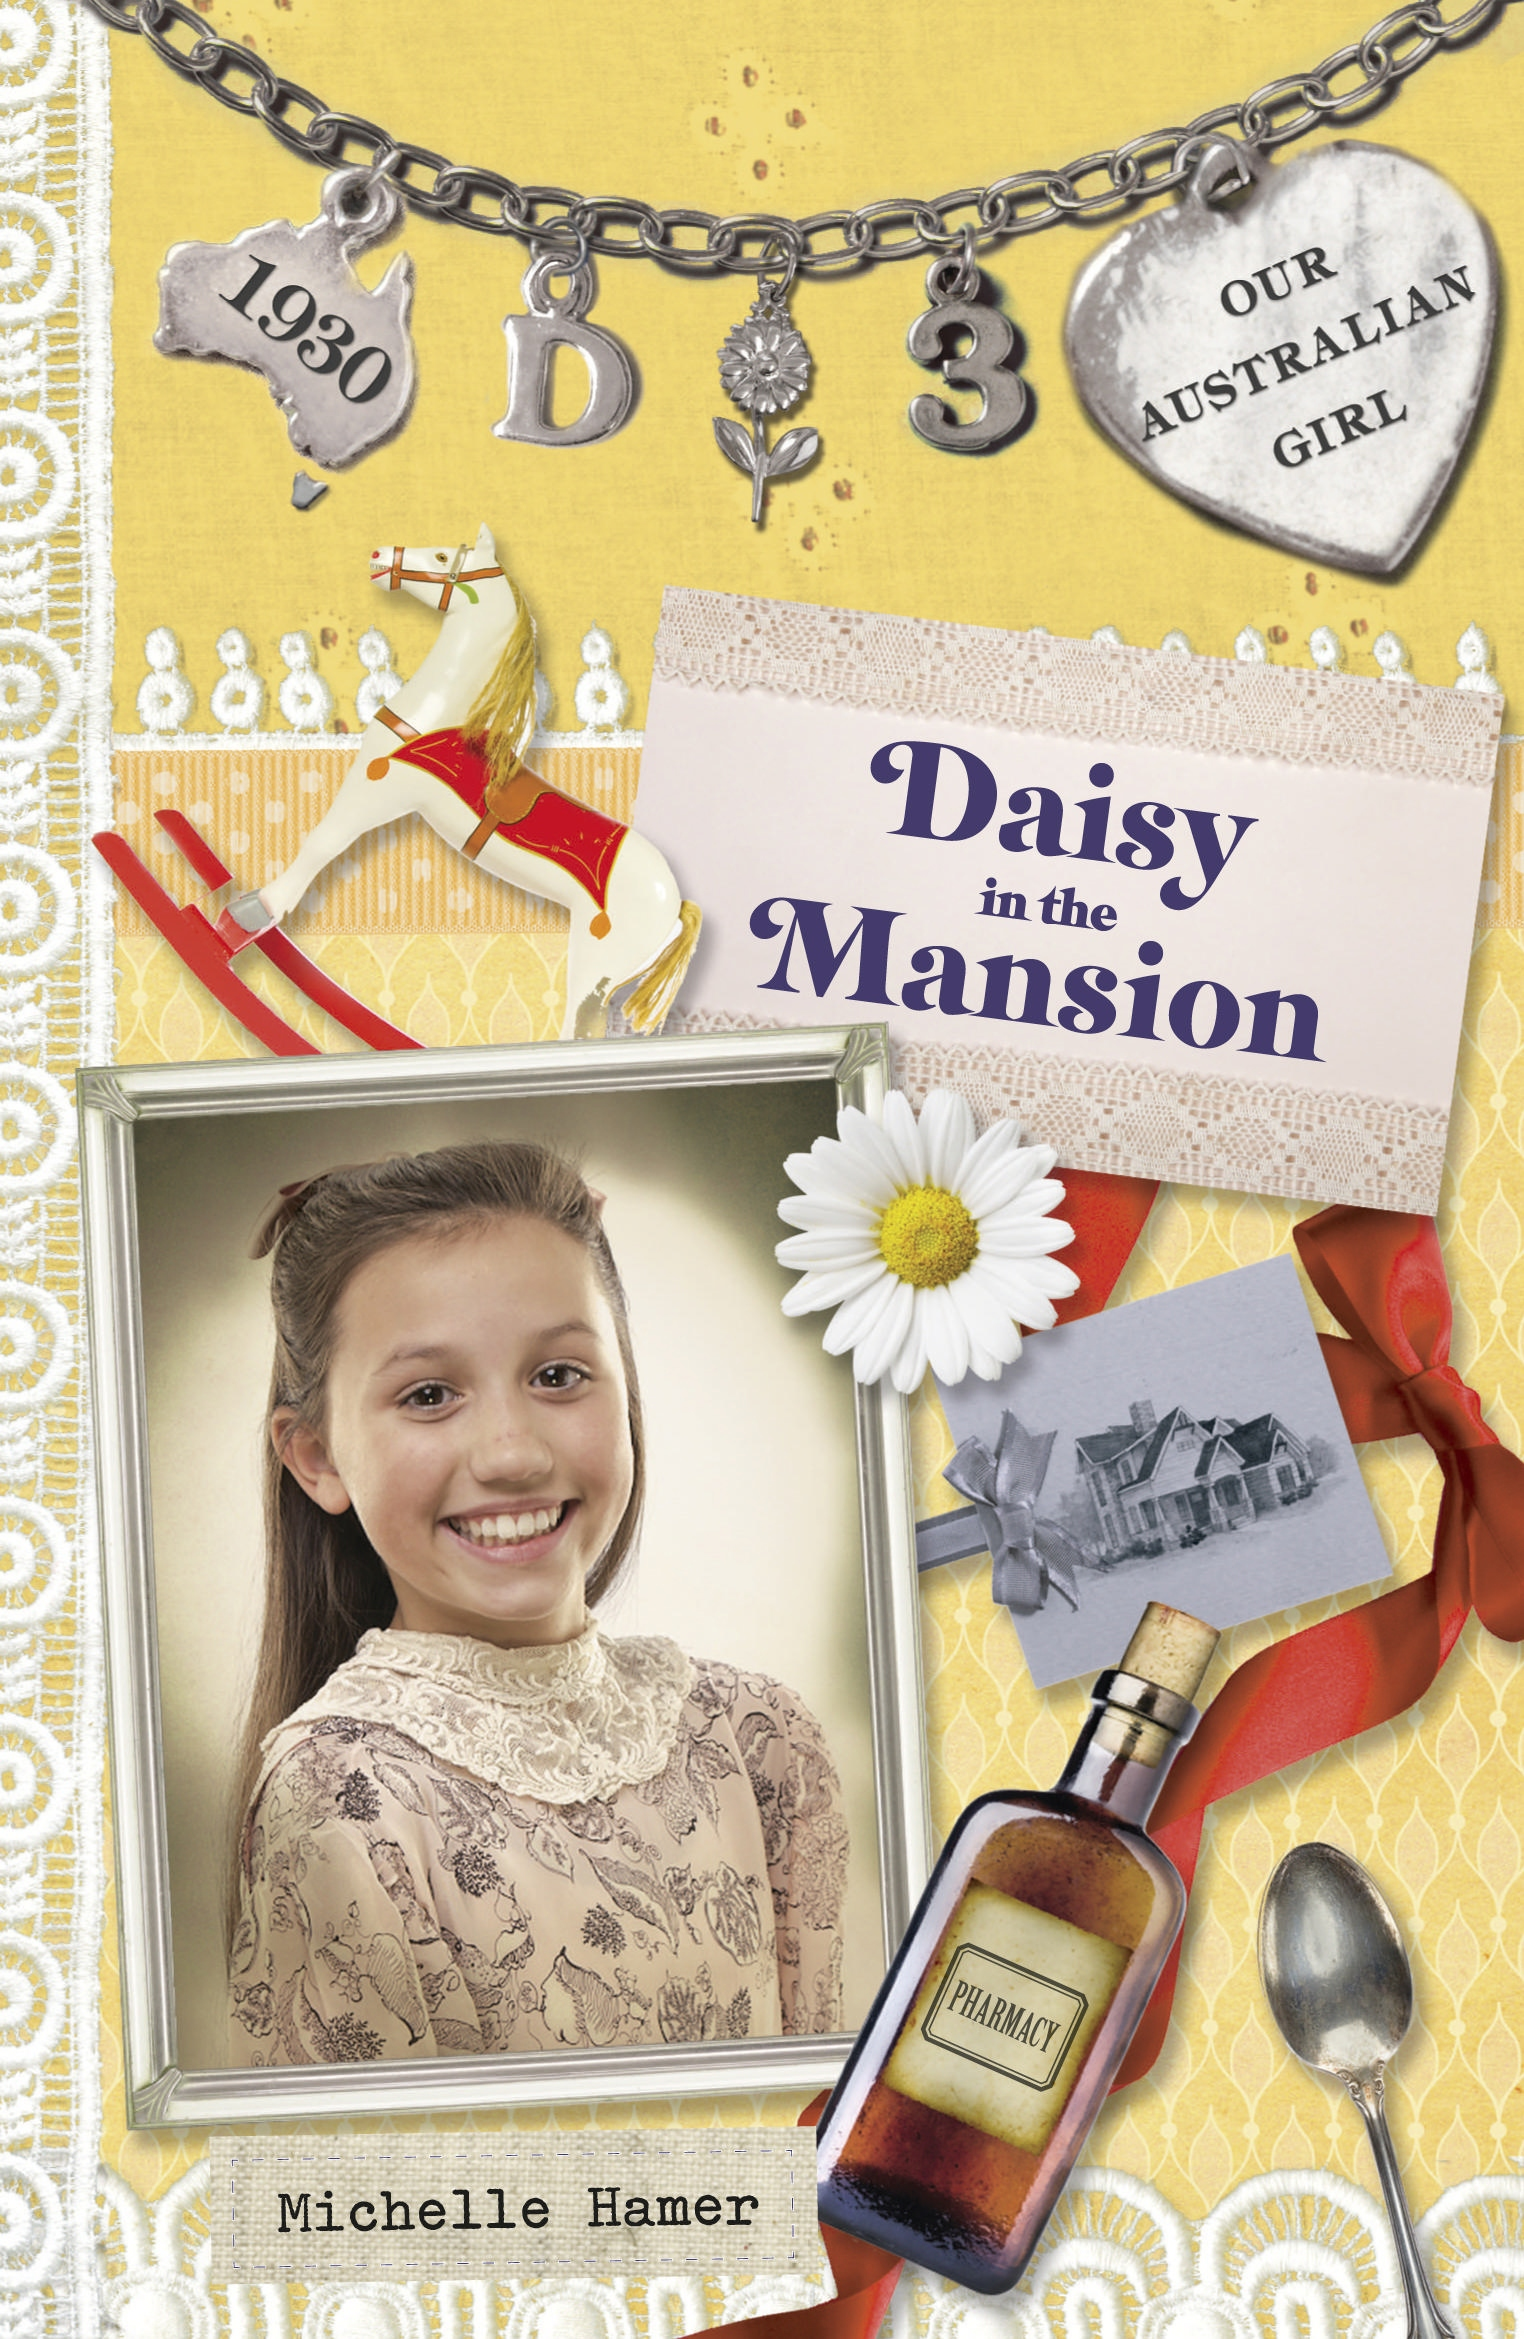 Our Australian Girl: Daisy in the Mansion (Book 3) (eBook)